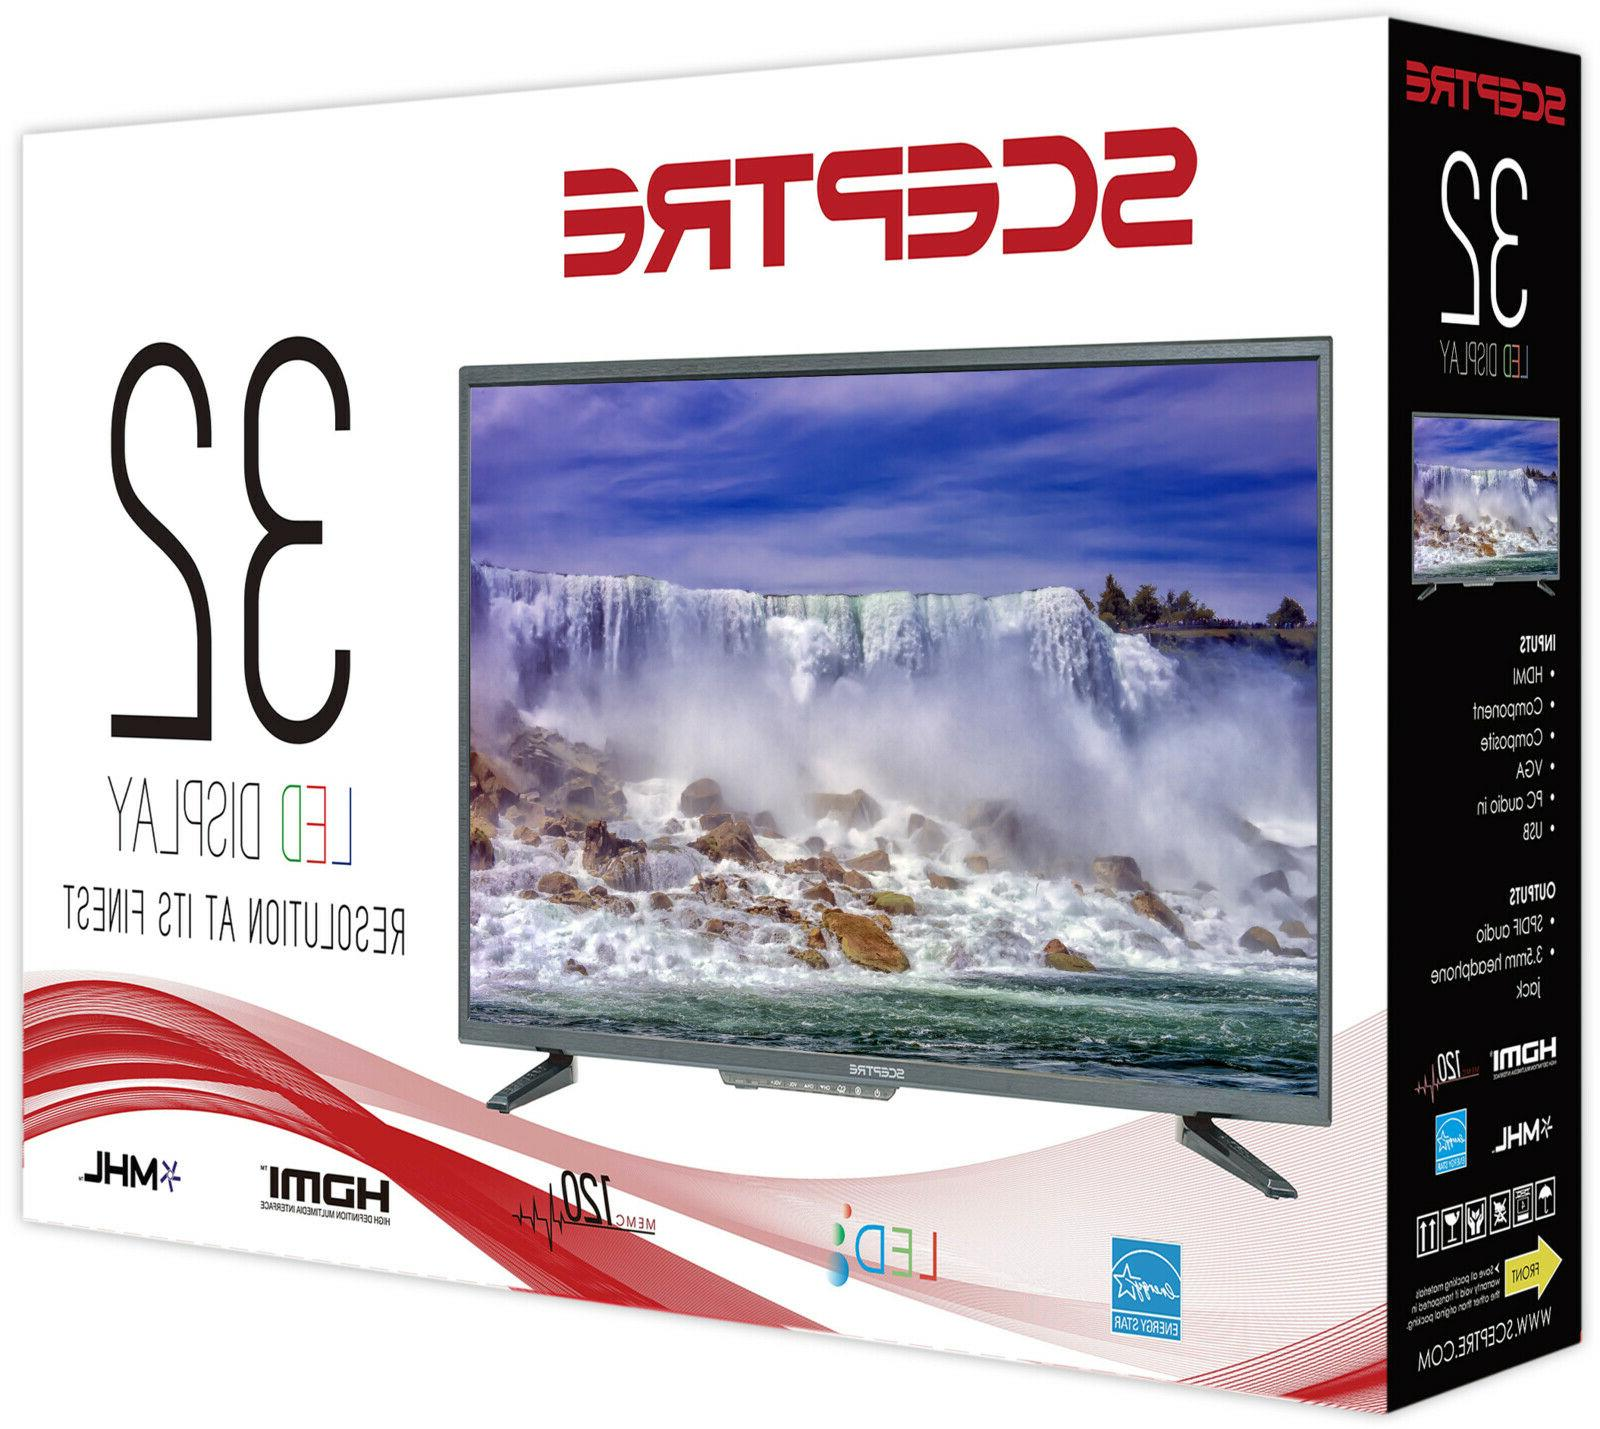 Sceptre 32inch Crystal HD 1080P LED TV Television New